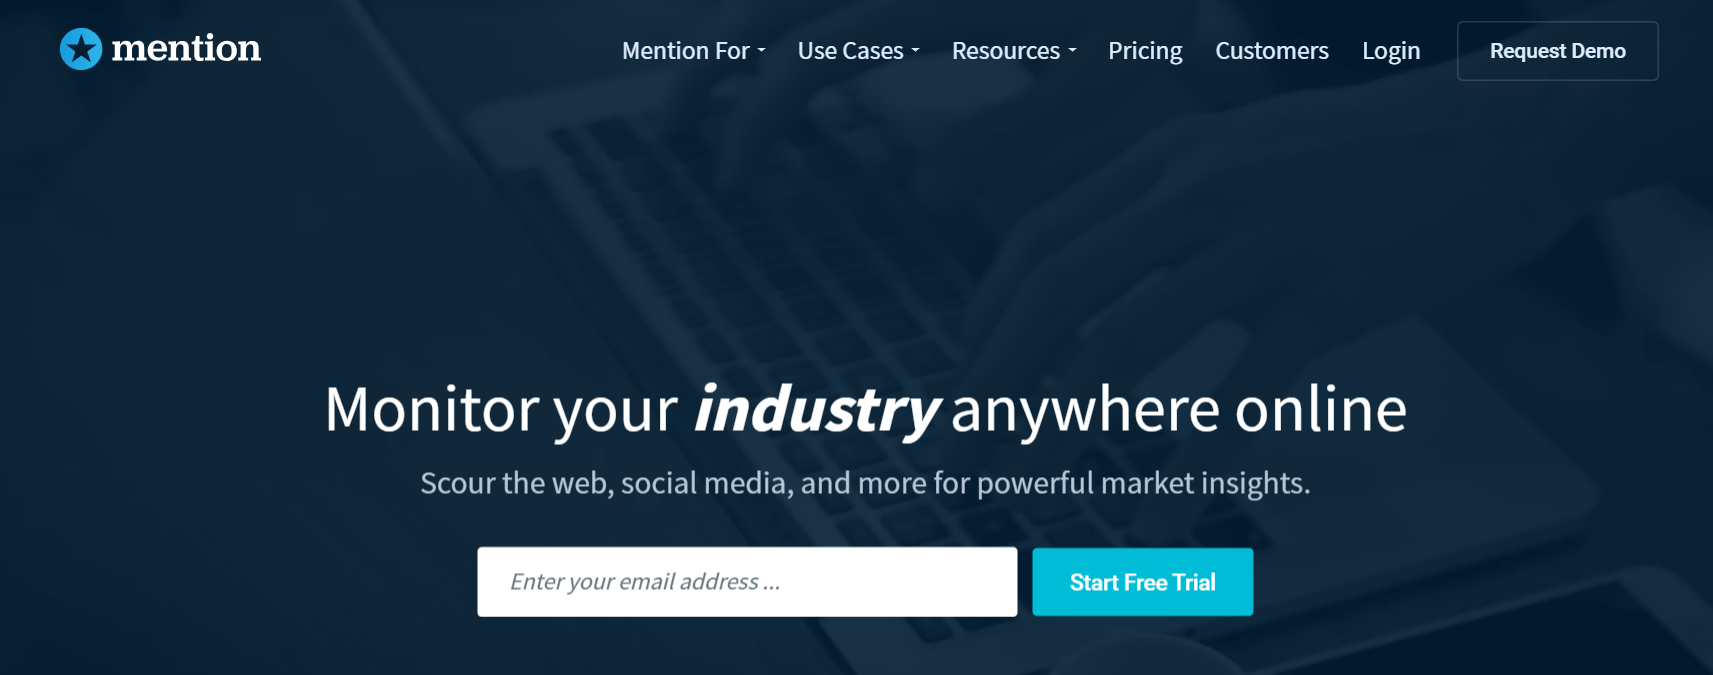 Social Listening Tools: The Mention website.